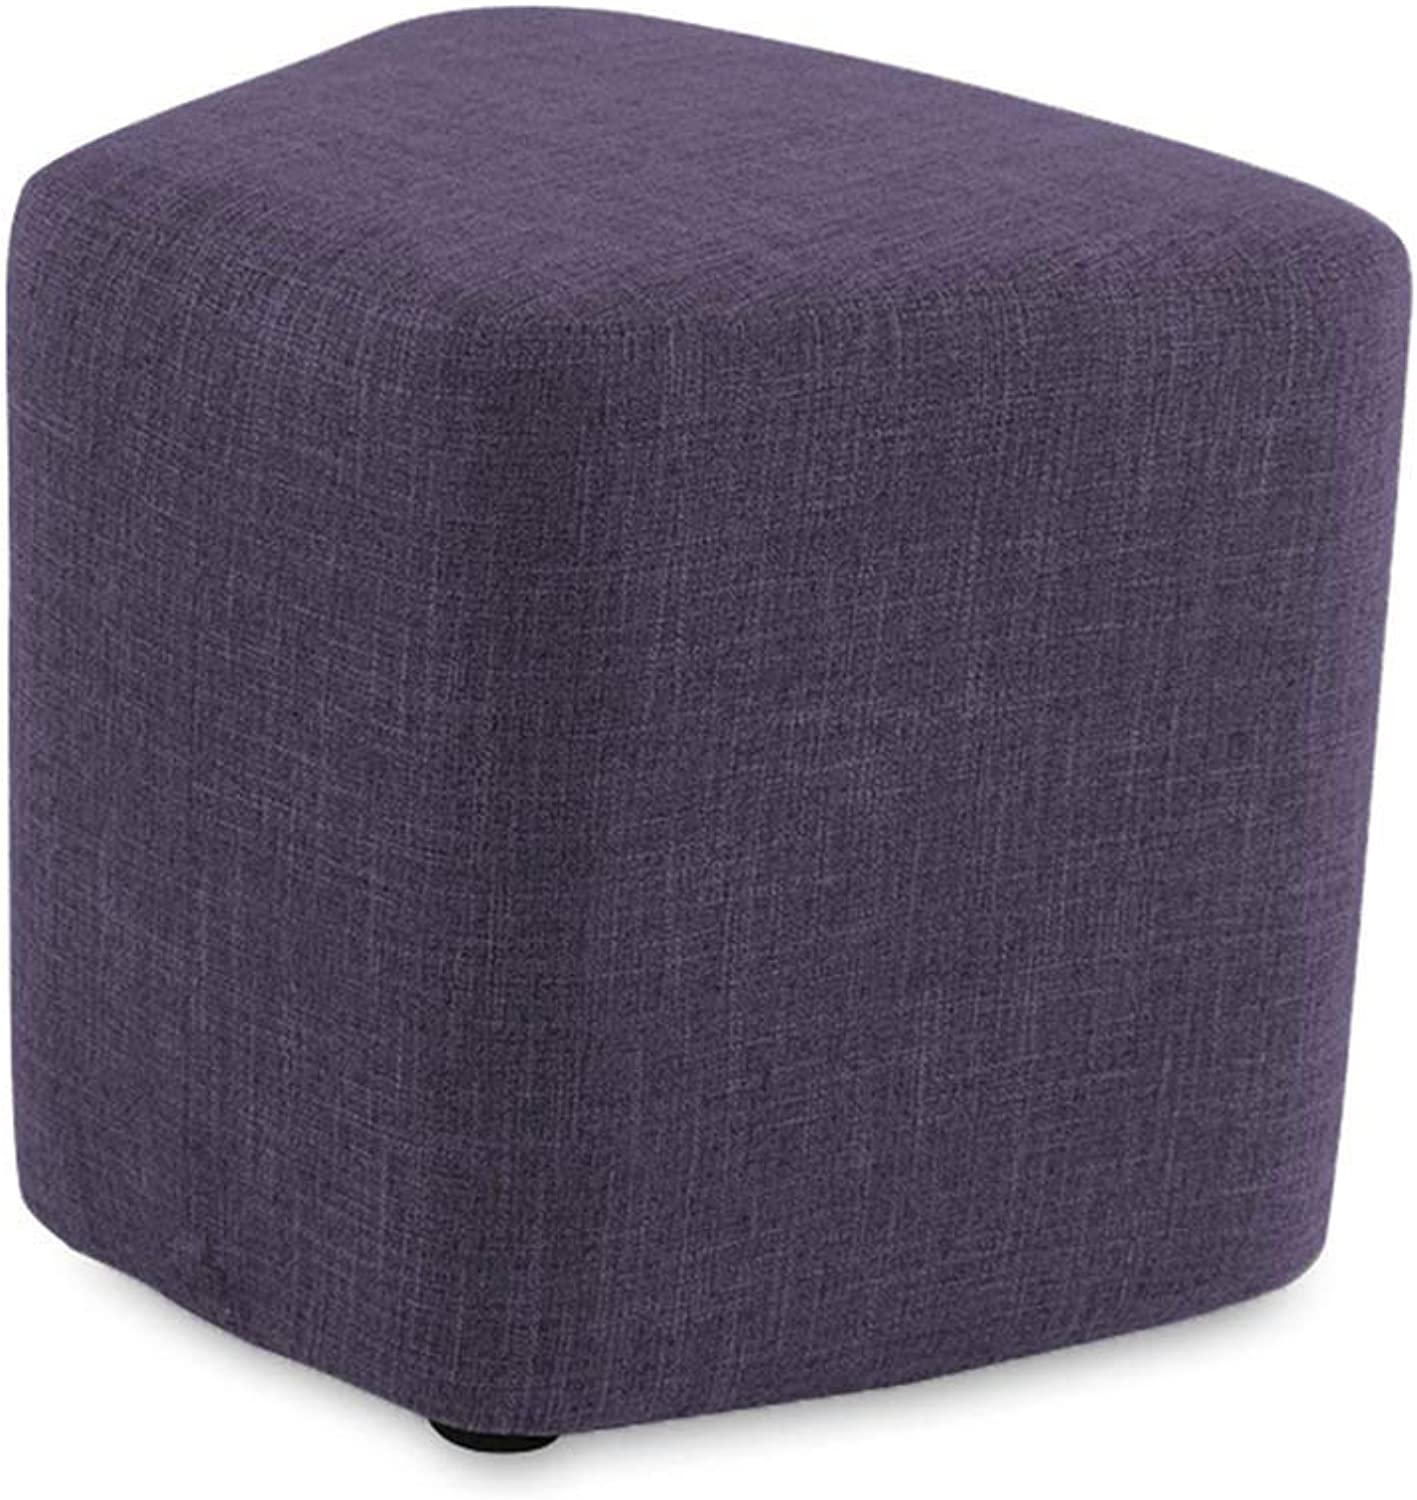 Stools Footstool Work Stool Simple Combination Fashion Household Change shoes Coffee Table Pedestal Multi-color Optional ZHANGQIANG (color   Purple, Size   Large)